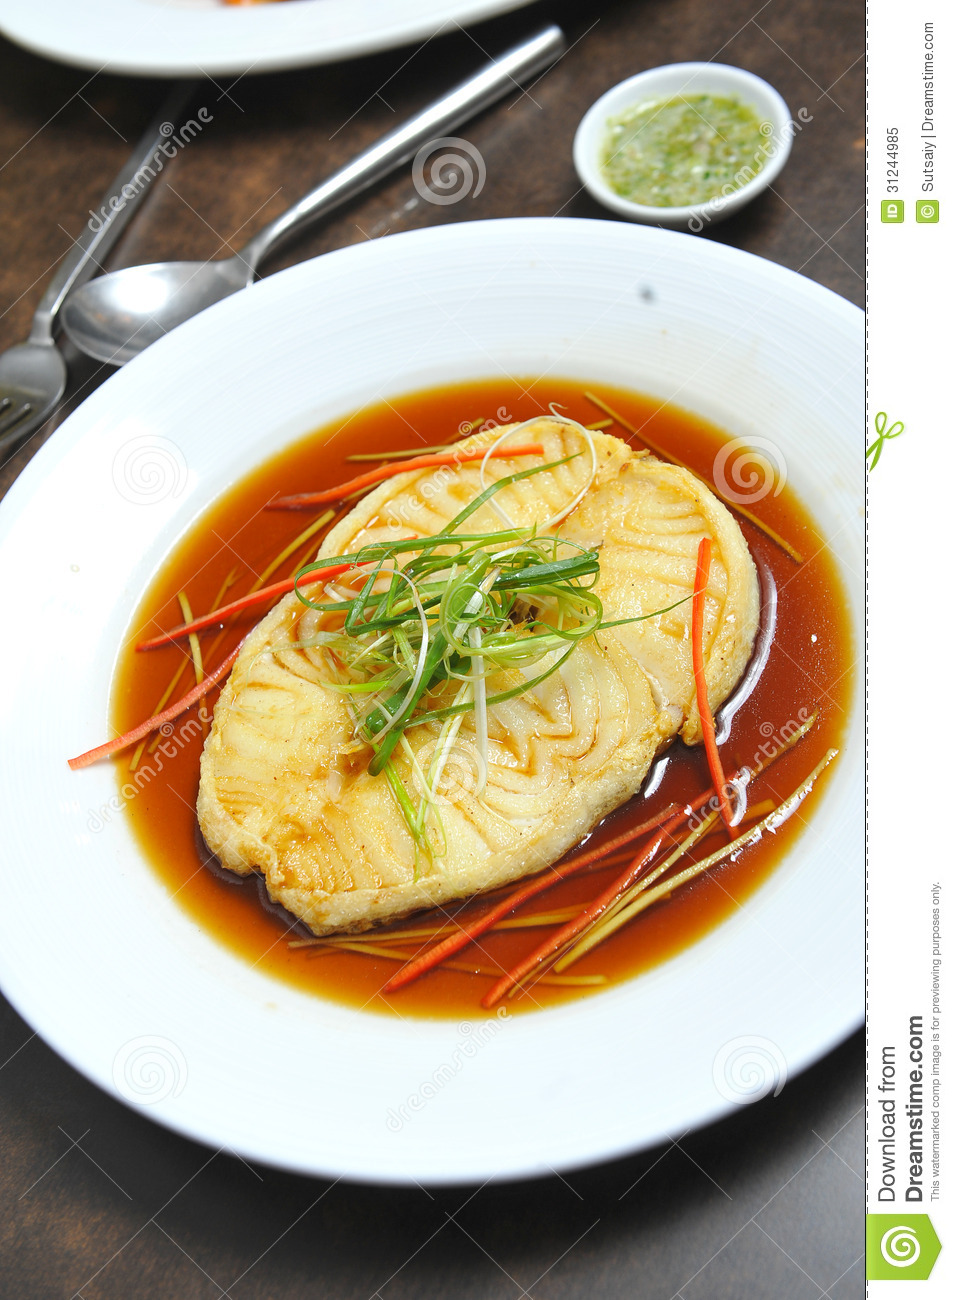 Fish in soy sauce royalty free stock photo image 31244985 for Soy sauce fish